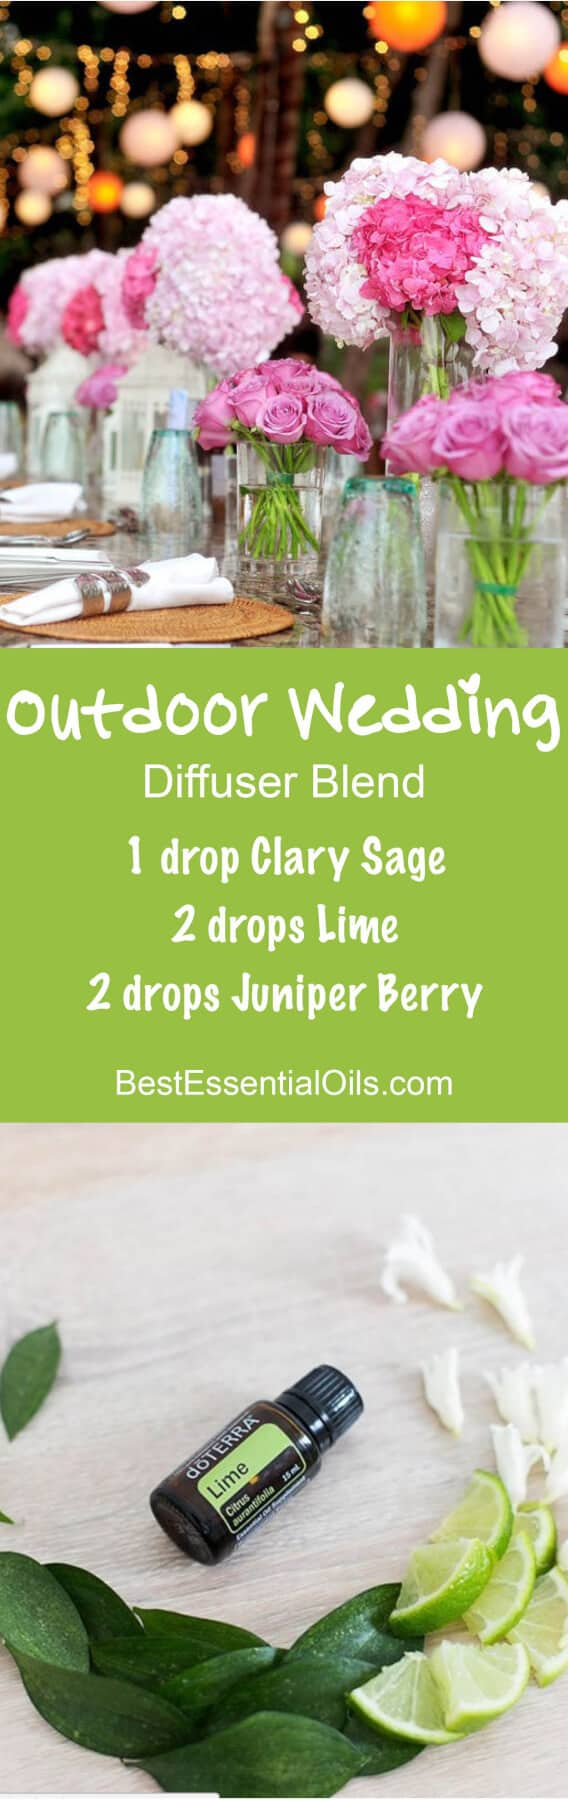 Outdoor Wedding doTERRA Diffuser Blend